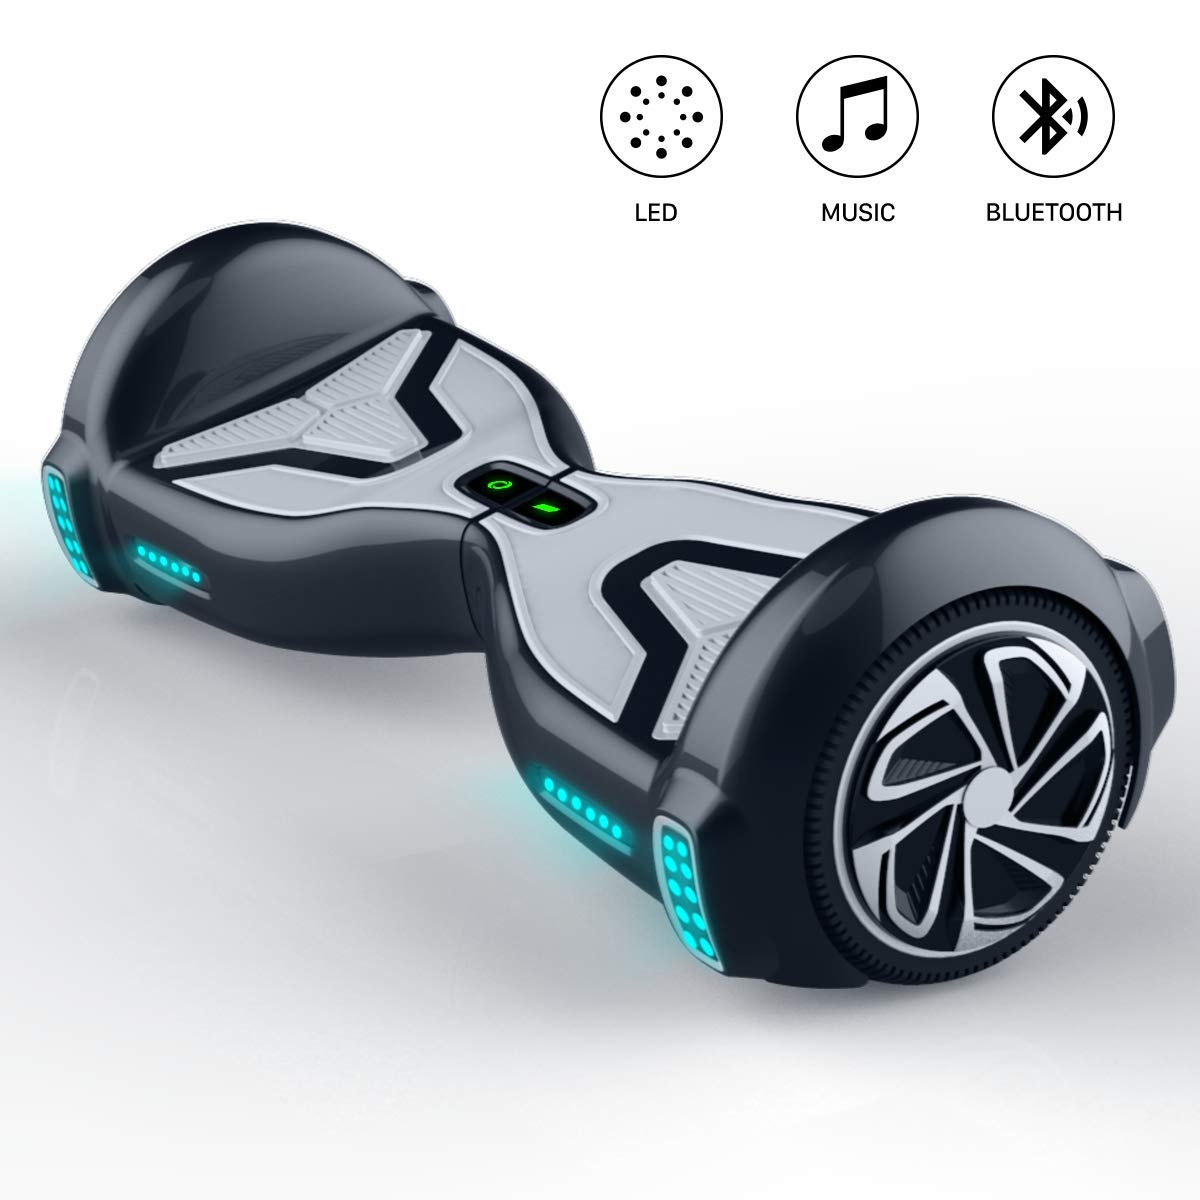 TOMOLOO Hoverboard with Bluetooth Speaker and LED Light, UL2272 Certified 6.5'' Two Wheels Electric Self Balancing Hover Boards for Kids and Adult by TOMOLOO